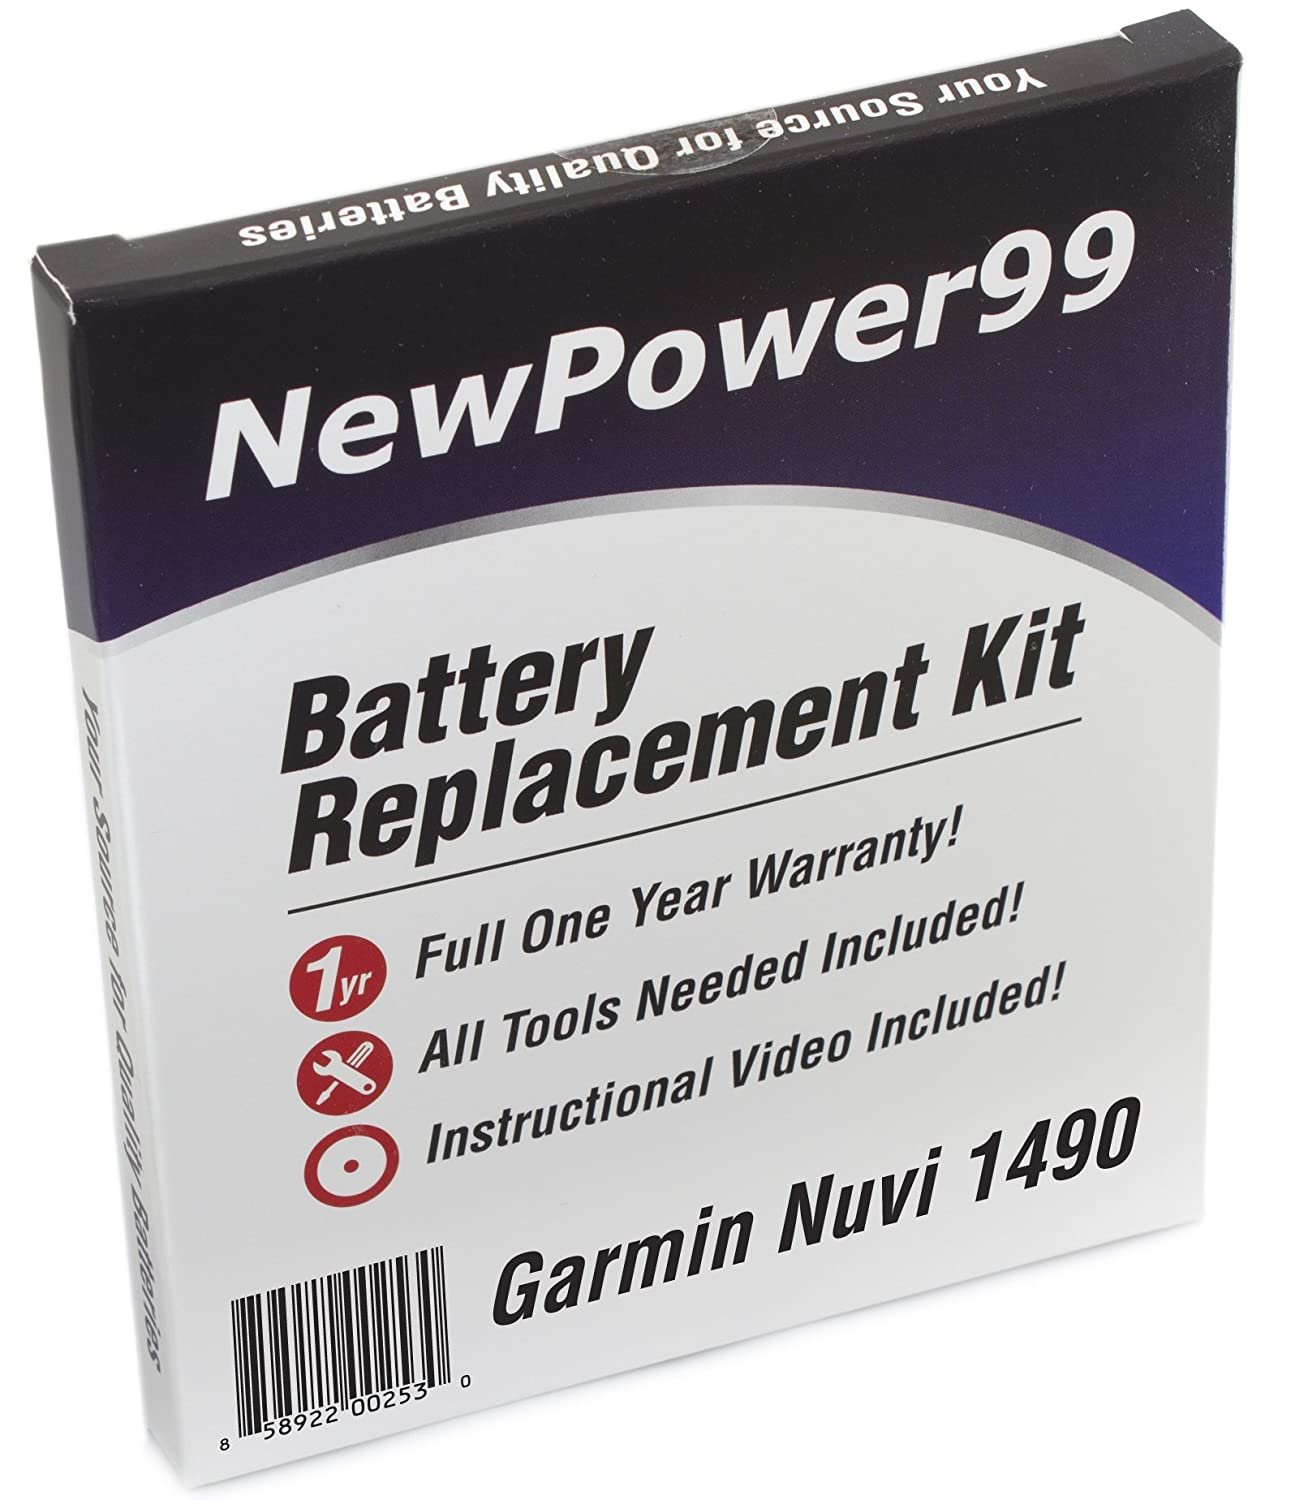 Battery Replacement Kit for Garmin Nuvi 1490 with Installation Video, Tools, and Extended Life Battery. NewPower99